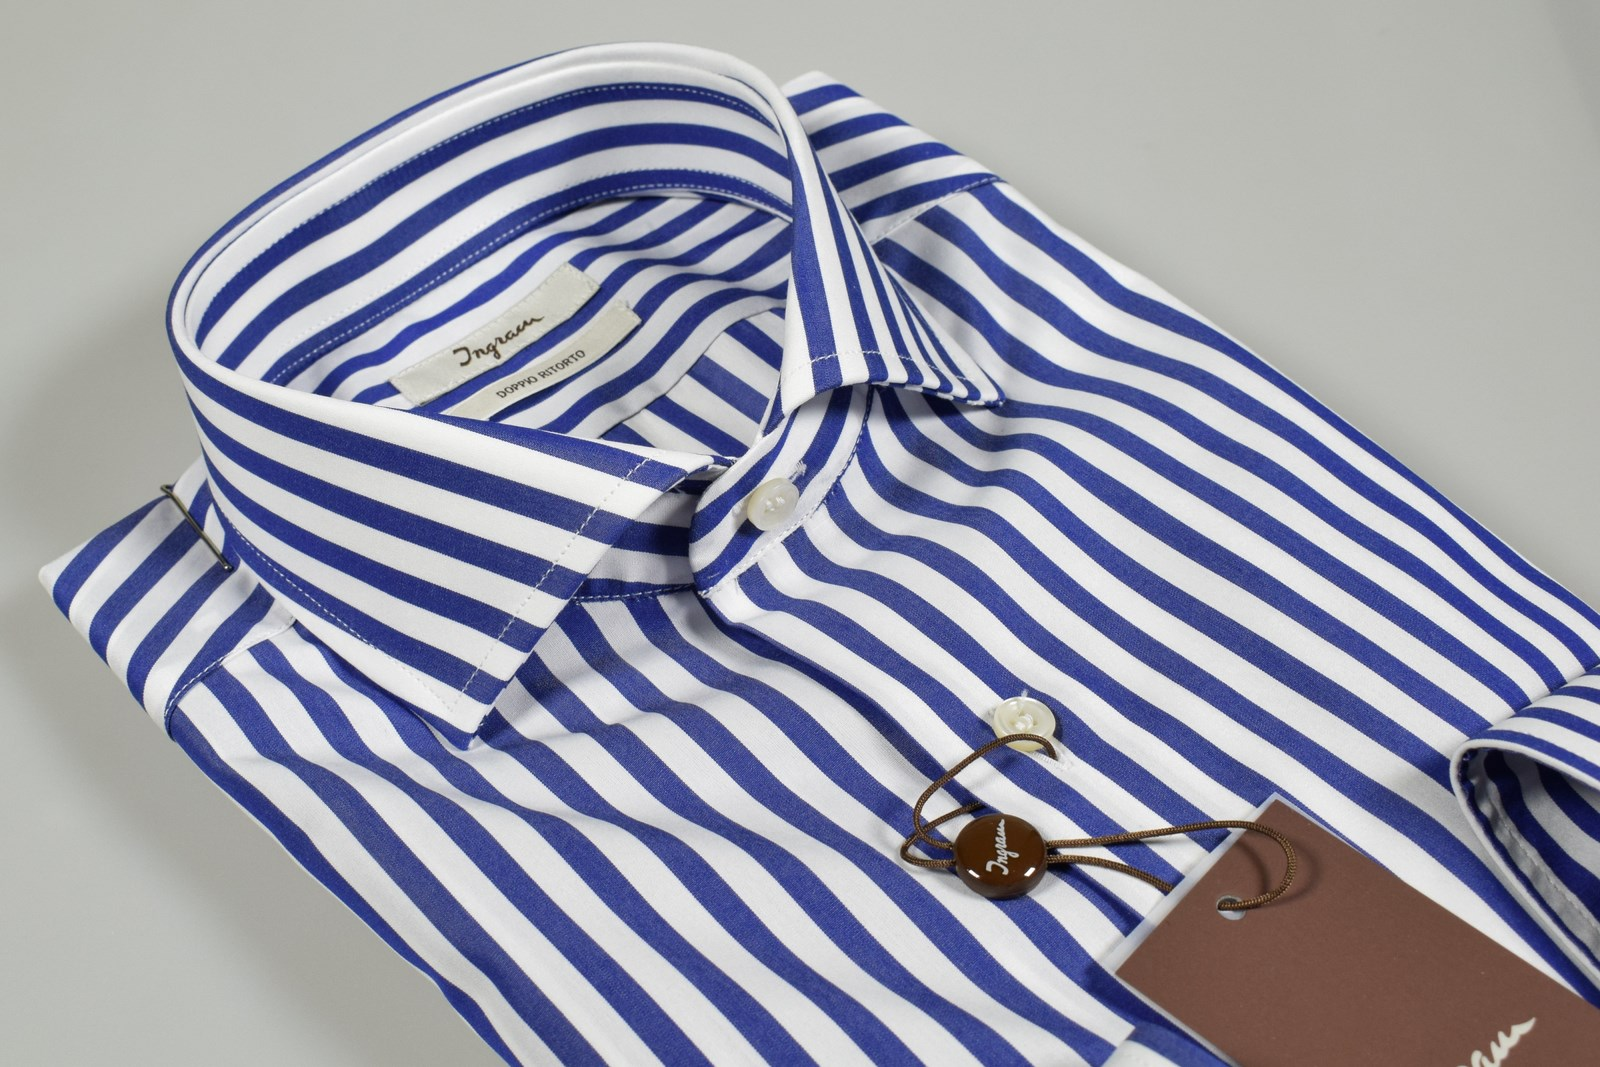 Men's slim fit Ingram shirts striped double twisted cotton